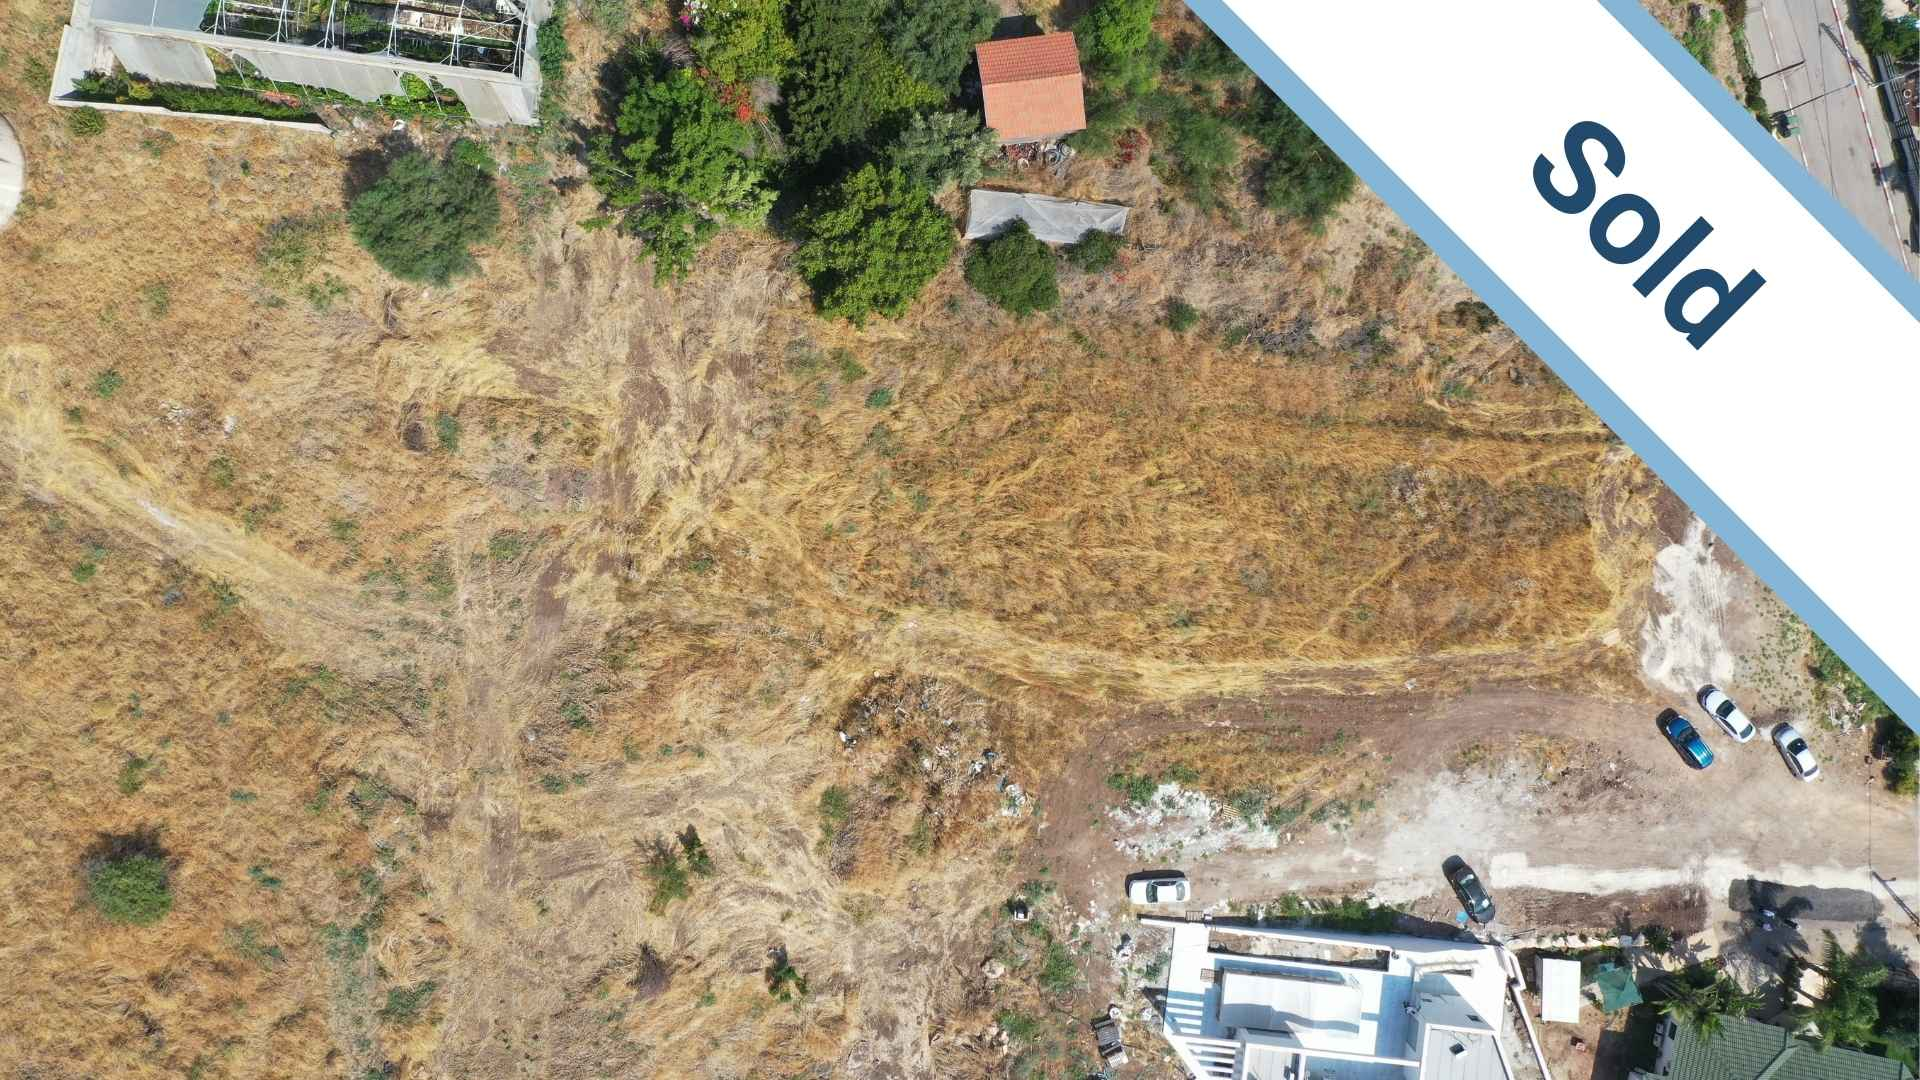 Land for sale in Israel for building